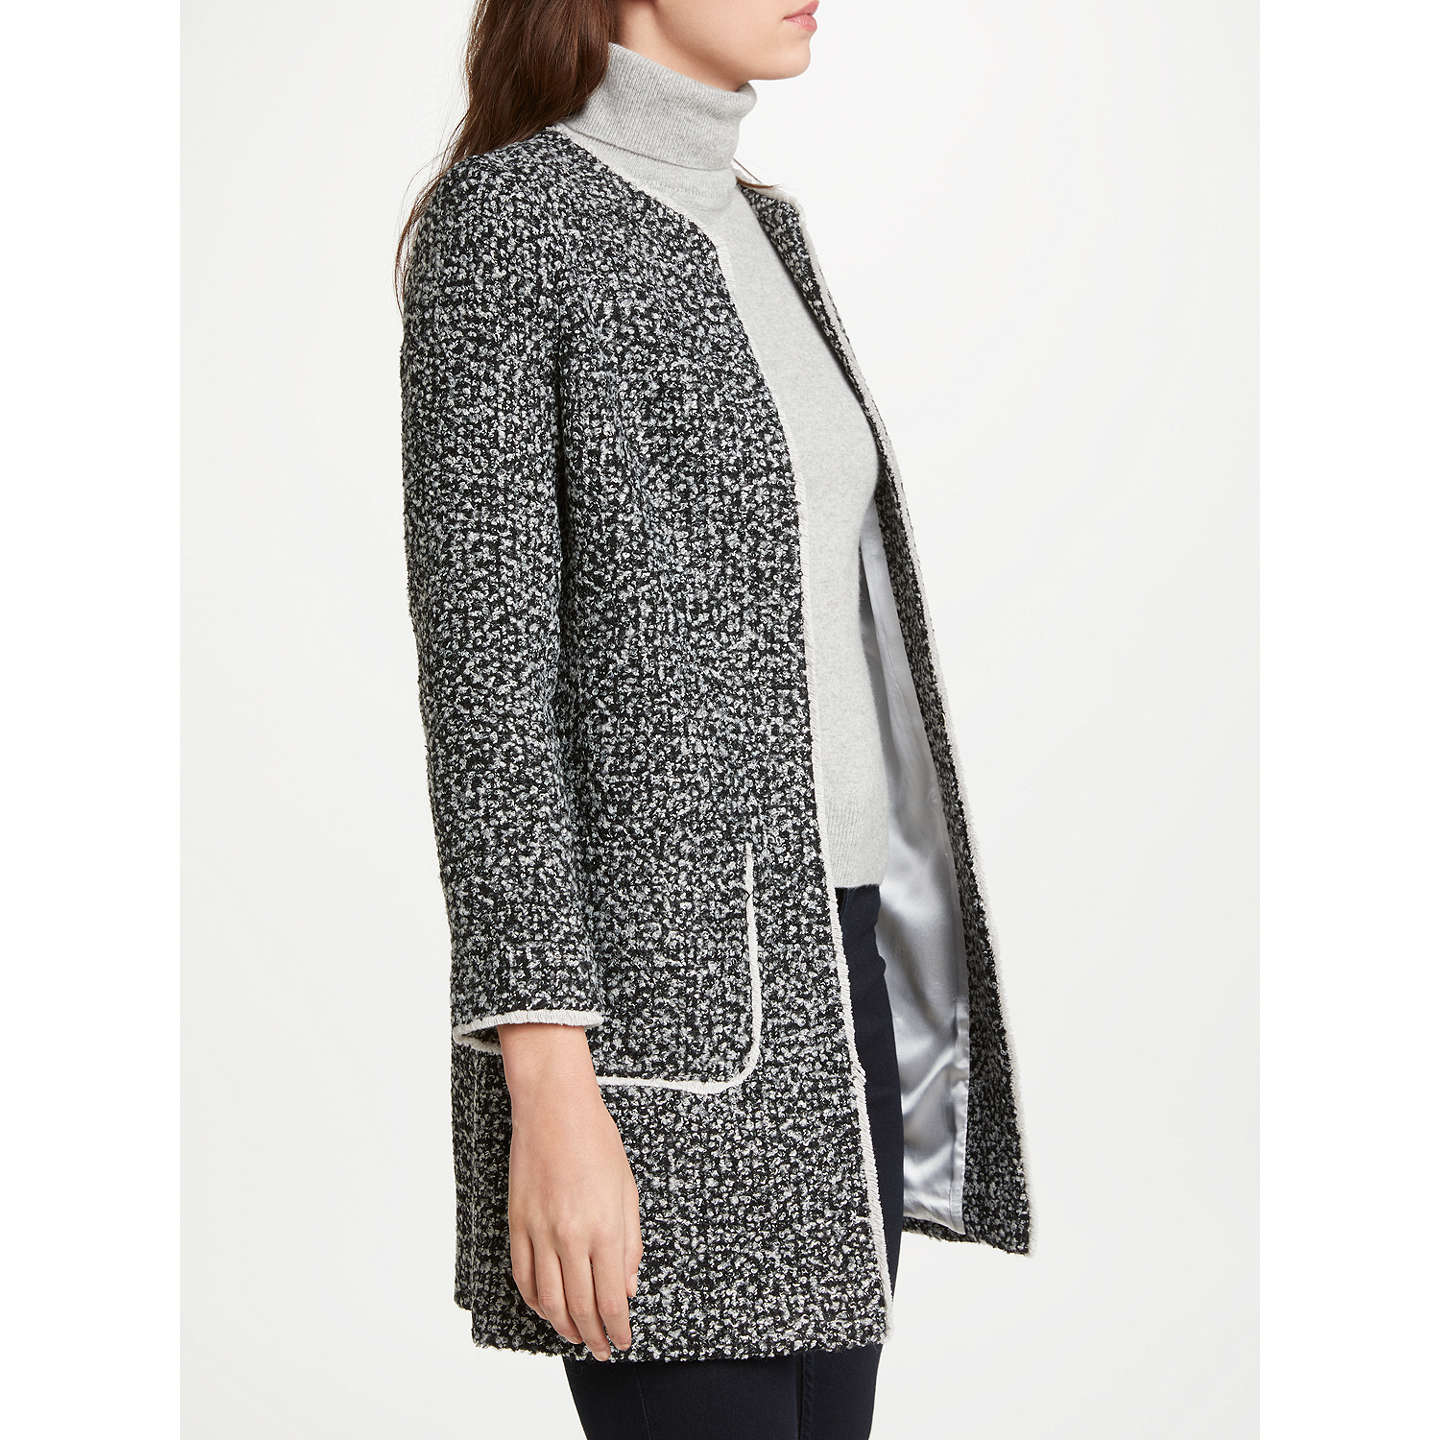 BuyHelene For Denim Wardrobe Alice Jacket, Black/Cream, 8 Online at johnlewis.com